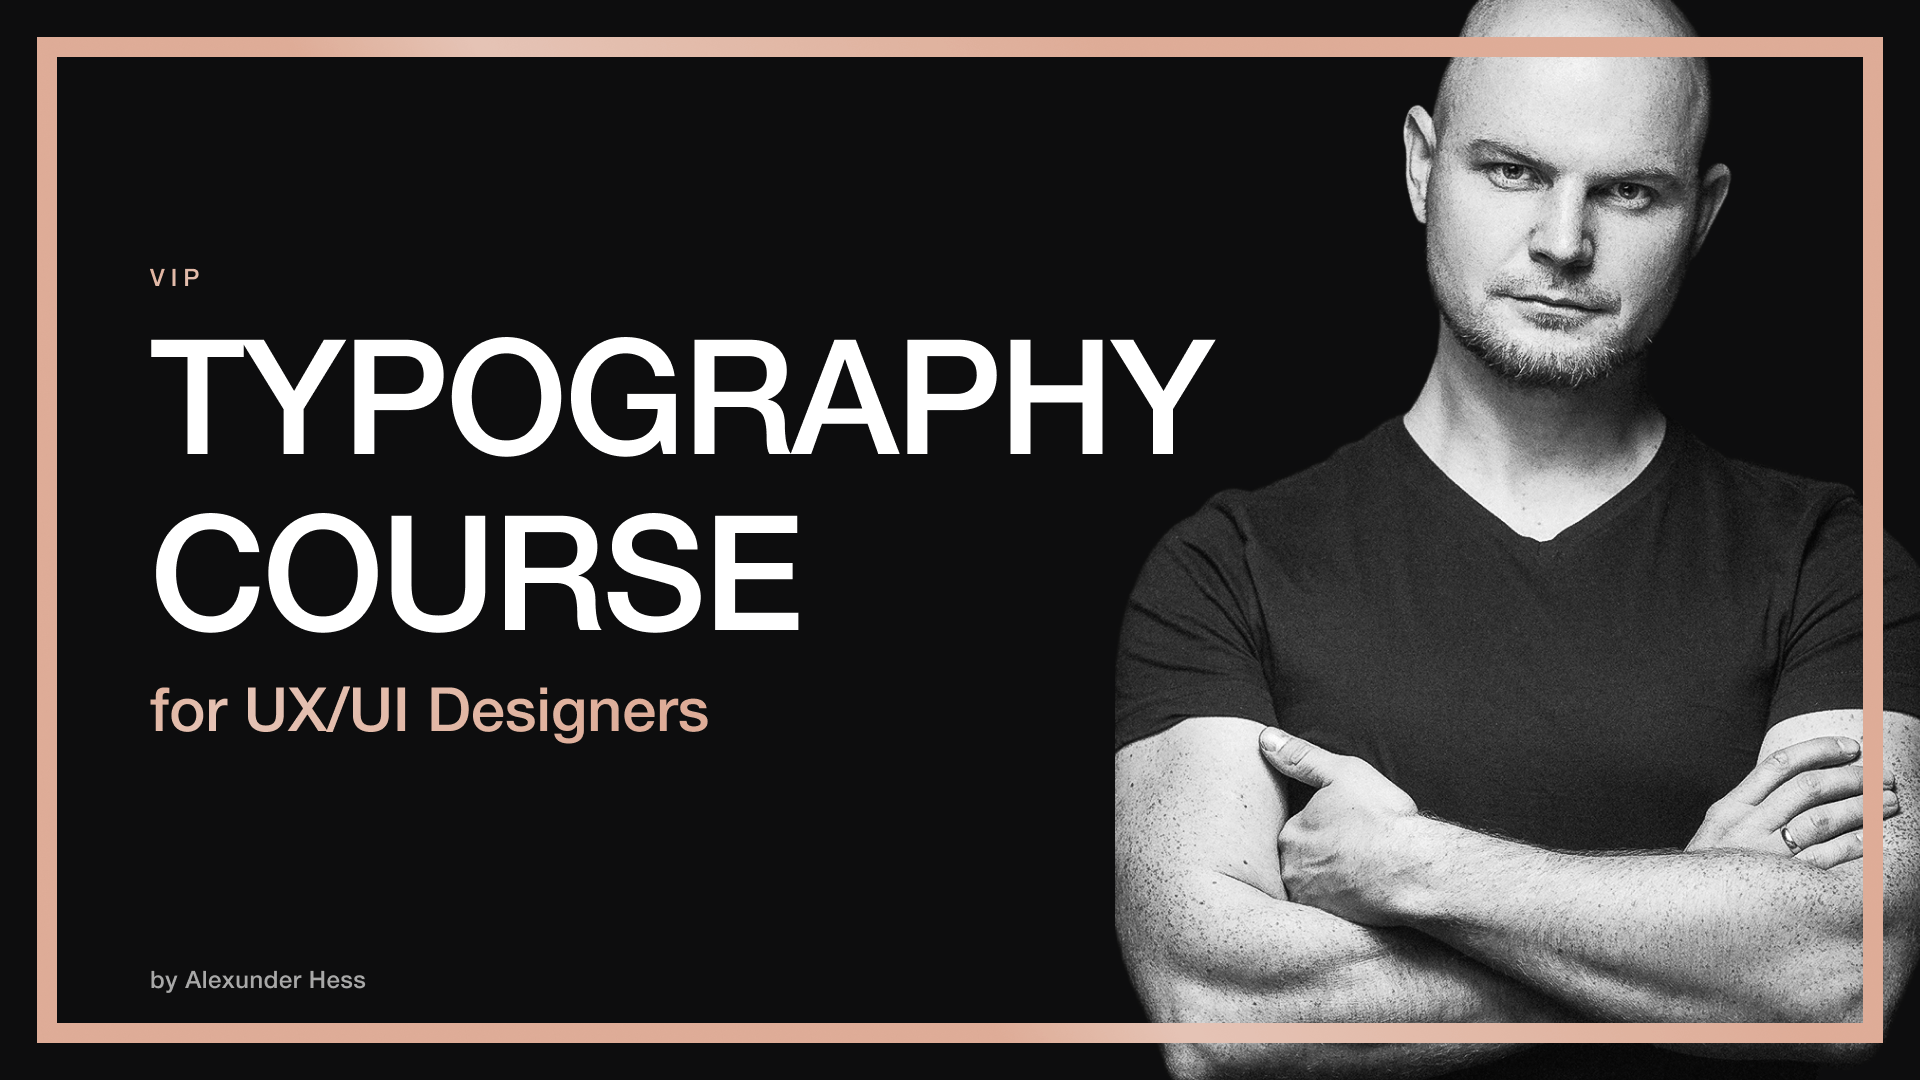 typography-course-for-uxui-designers-by-alexunder-hess-vip